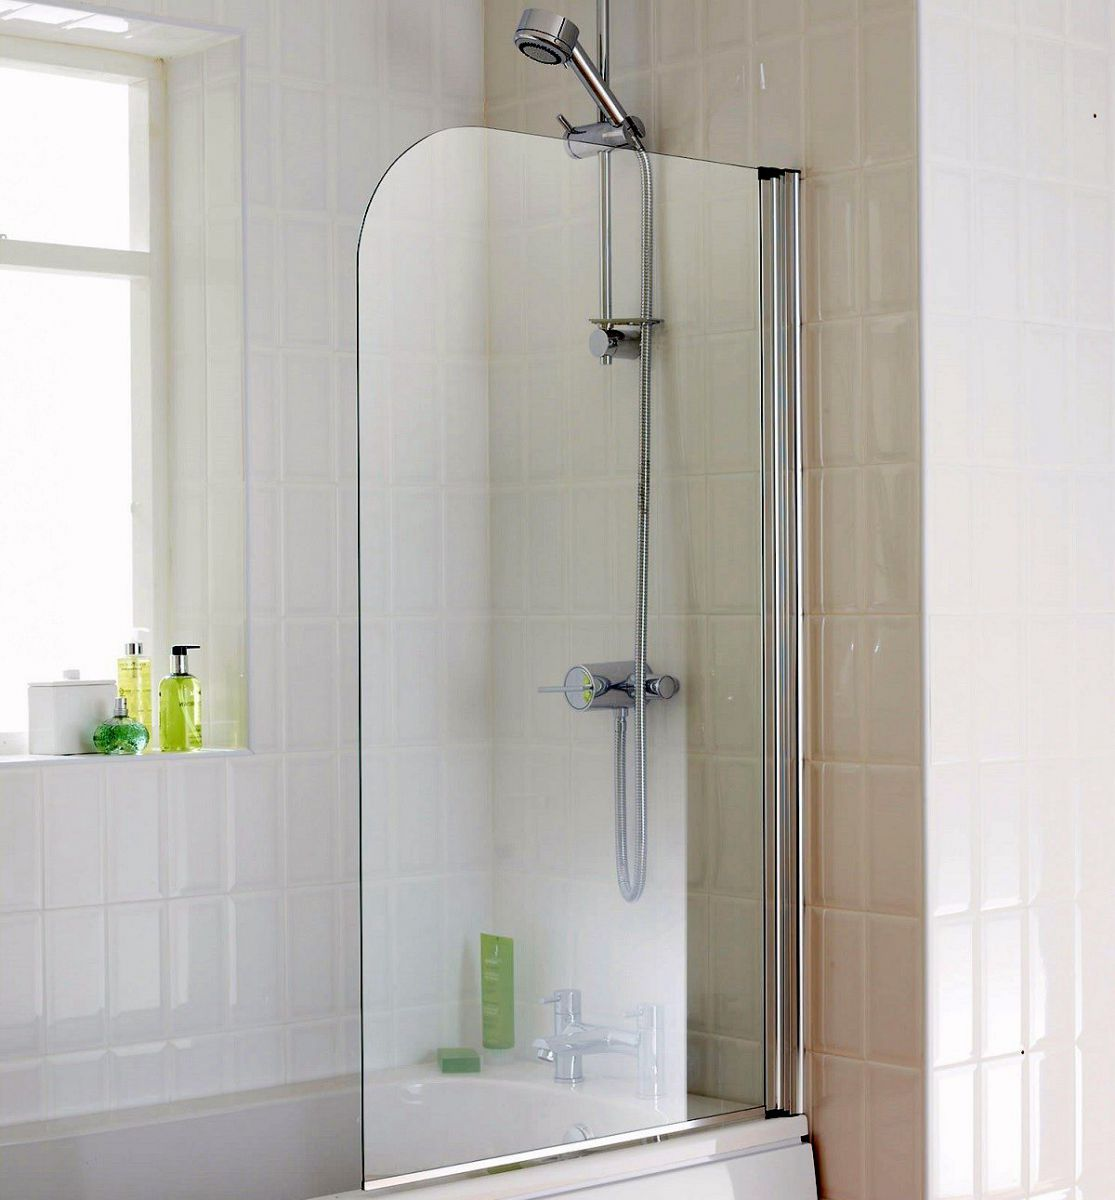 Shower Screens For Baths origins element 750 x 1300mm bath screen : uk bathrooms